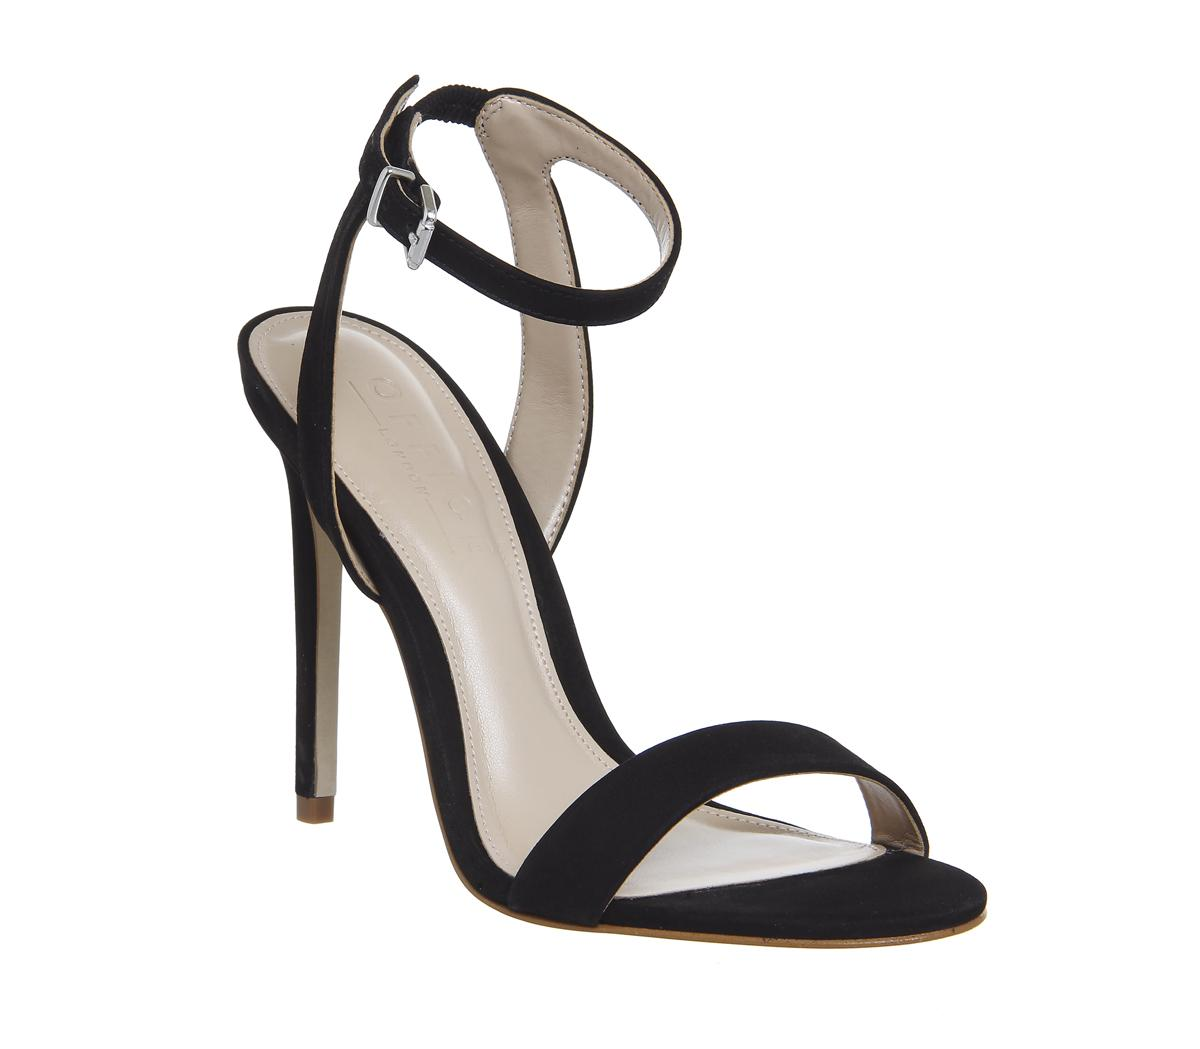 Alana Single Sole Sandals